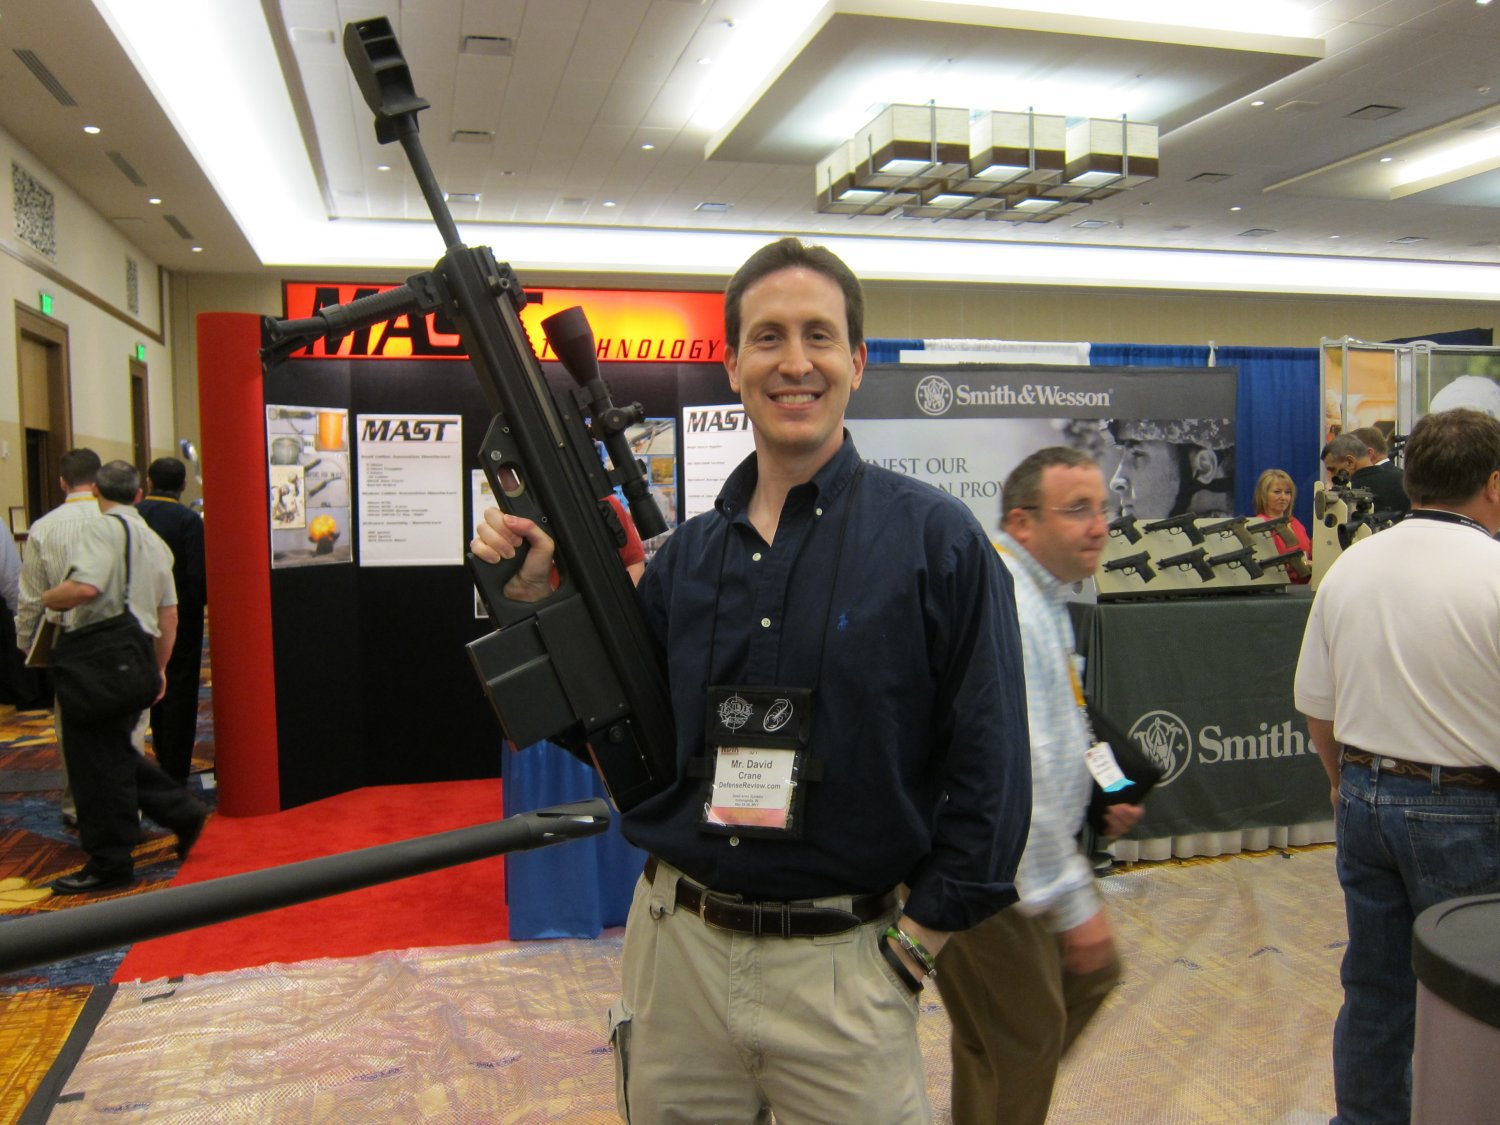 David Crane of DefenseReview.com Holding Micor Leader 50 Lightweight Bullpup Semi Auto .50 BMG Sniper Anti Materiel Rifle NDIA Small Arms Symposium 2011 3 <!  :en  >MICOR Defense Leader 50 Ultra Compact, Lightweight Bullpup Semi Auto .50 BMG (12.7x99mm NATO) Sniper/Anti Materiel Rifle and PNW Arms Weapons Science .50BMG Ammo at NDIA Infantry Small Arms Systems Symposium 2011: Potential Long Range Lethality Game Changer Combo for 21st Century Infantry Warfare (Photos and Video!)<!  :  >